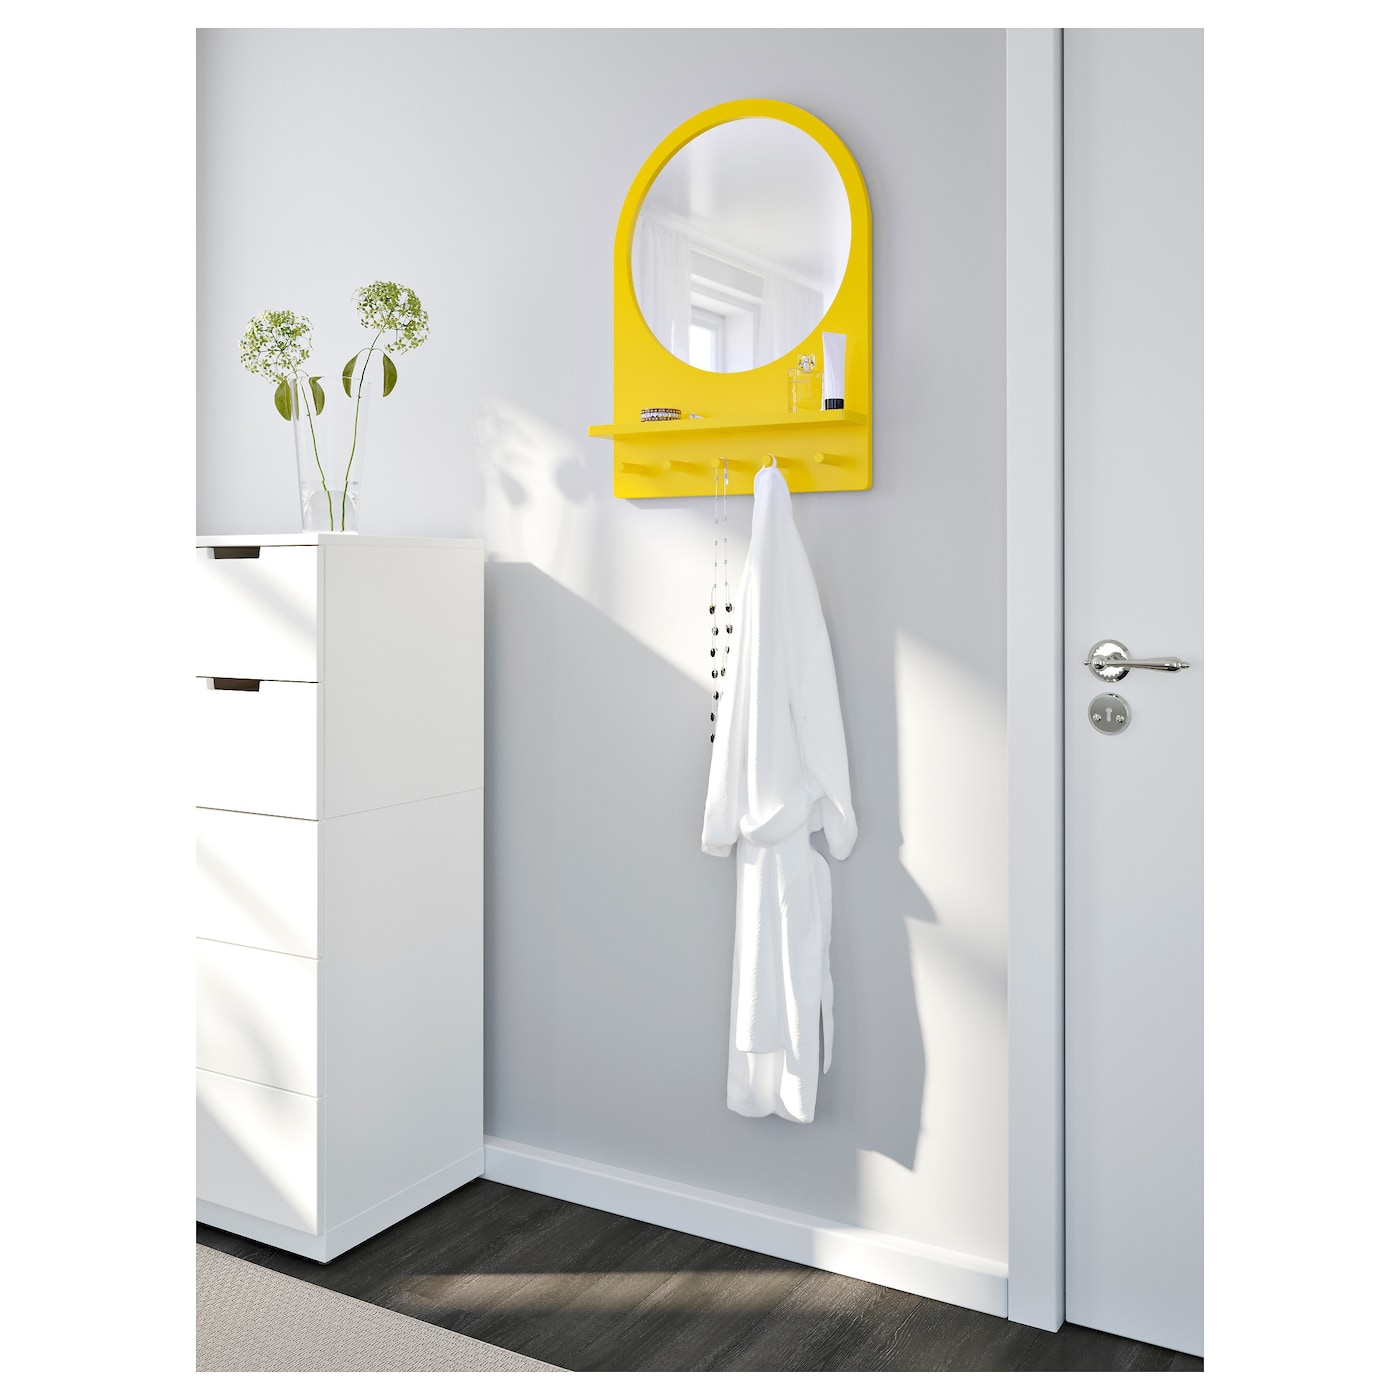 saltr d miroir avec tablette et crochets jaune 50x68 cm ikea. Black Bedroom Furniture Sets. Home Design Ideas